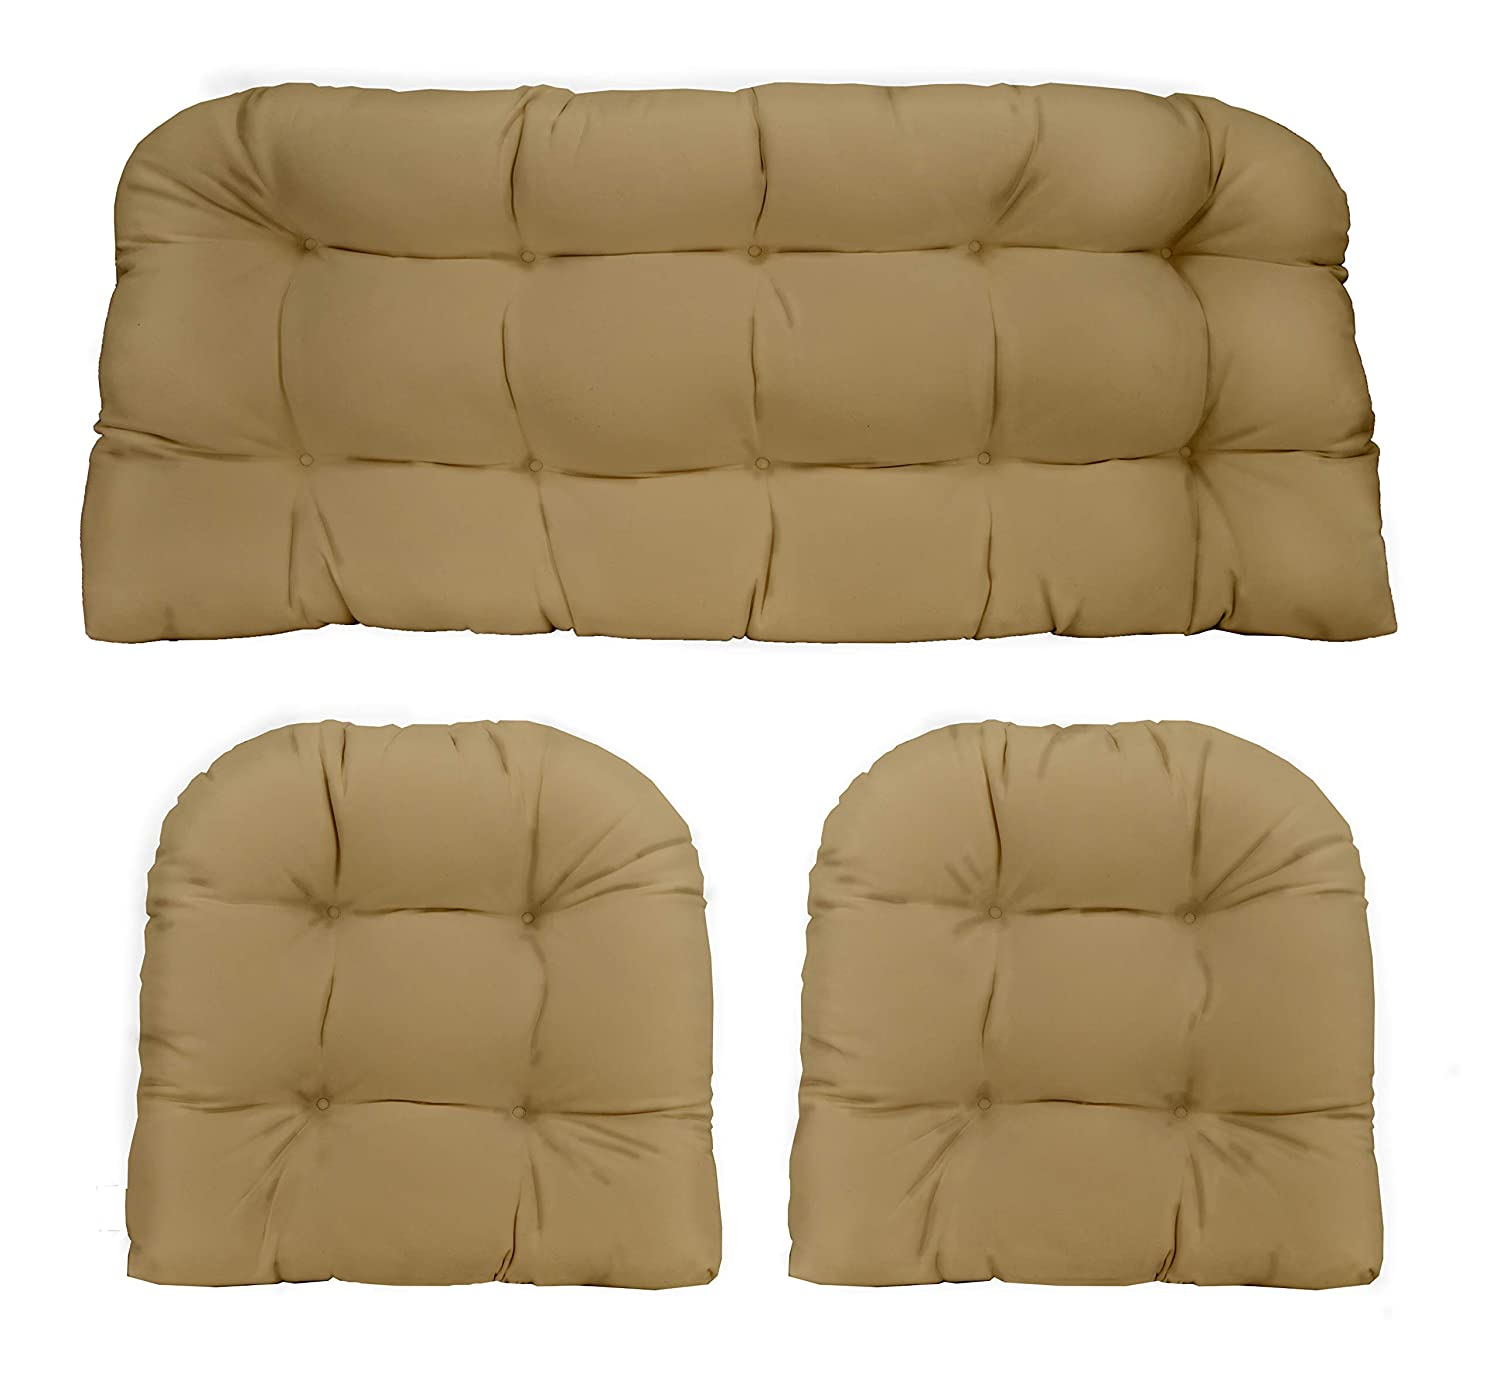 3 Piece Wicker Cushion Set – Indoor Outdoor Tan Solid Fabric Cushion for Wicker Loveseat Settee 2 Matching Chair Cushions